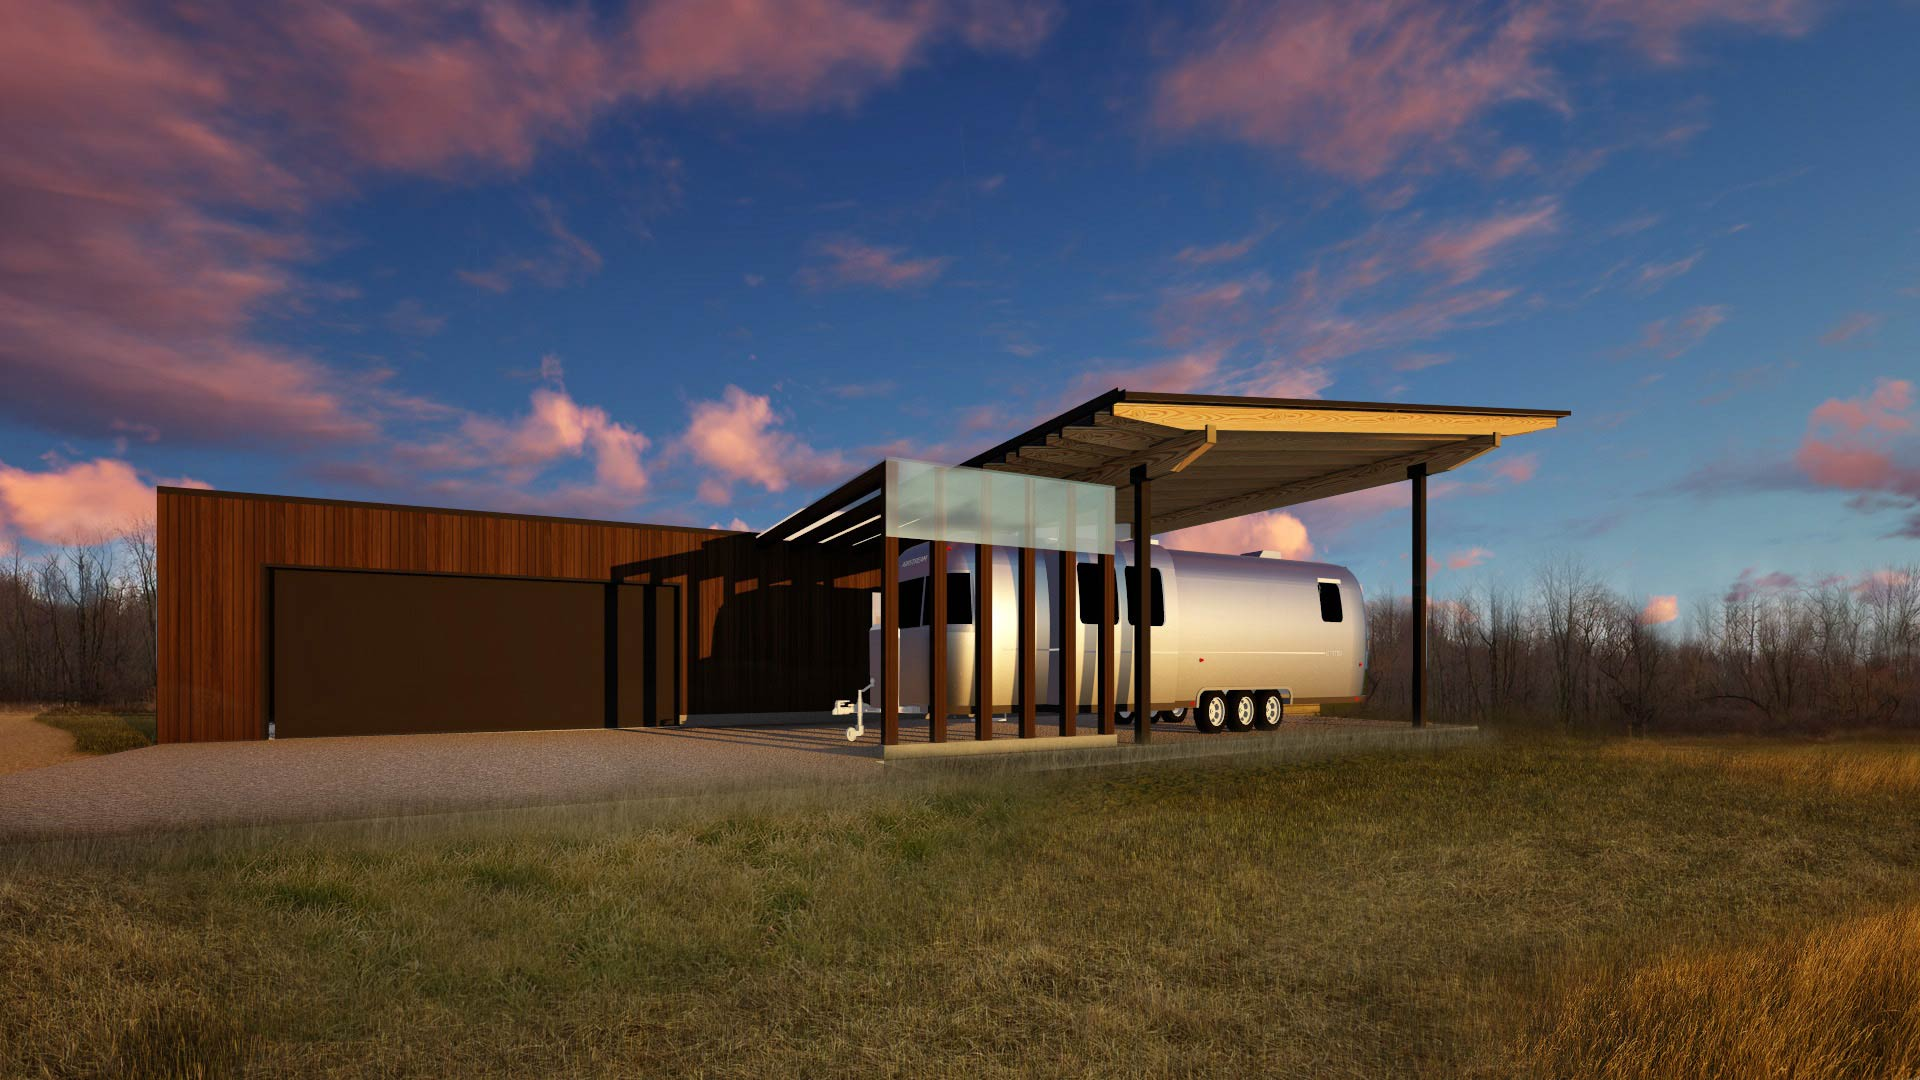 Rendering-West Exterior Elevation - Airstream Shelter - New Modern House 1 (Copperwood) - Zionsville, IN